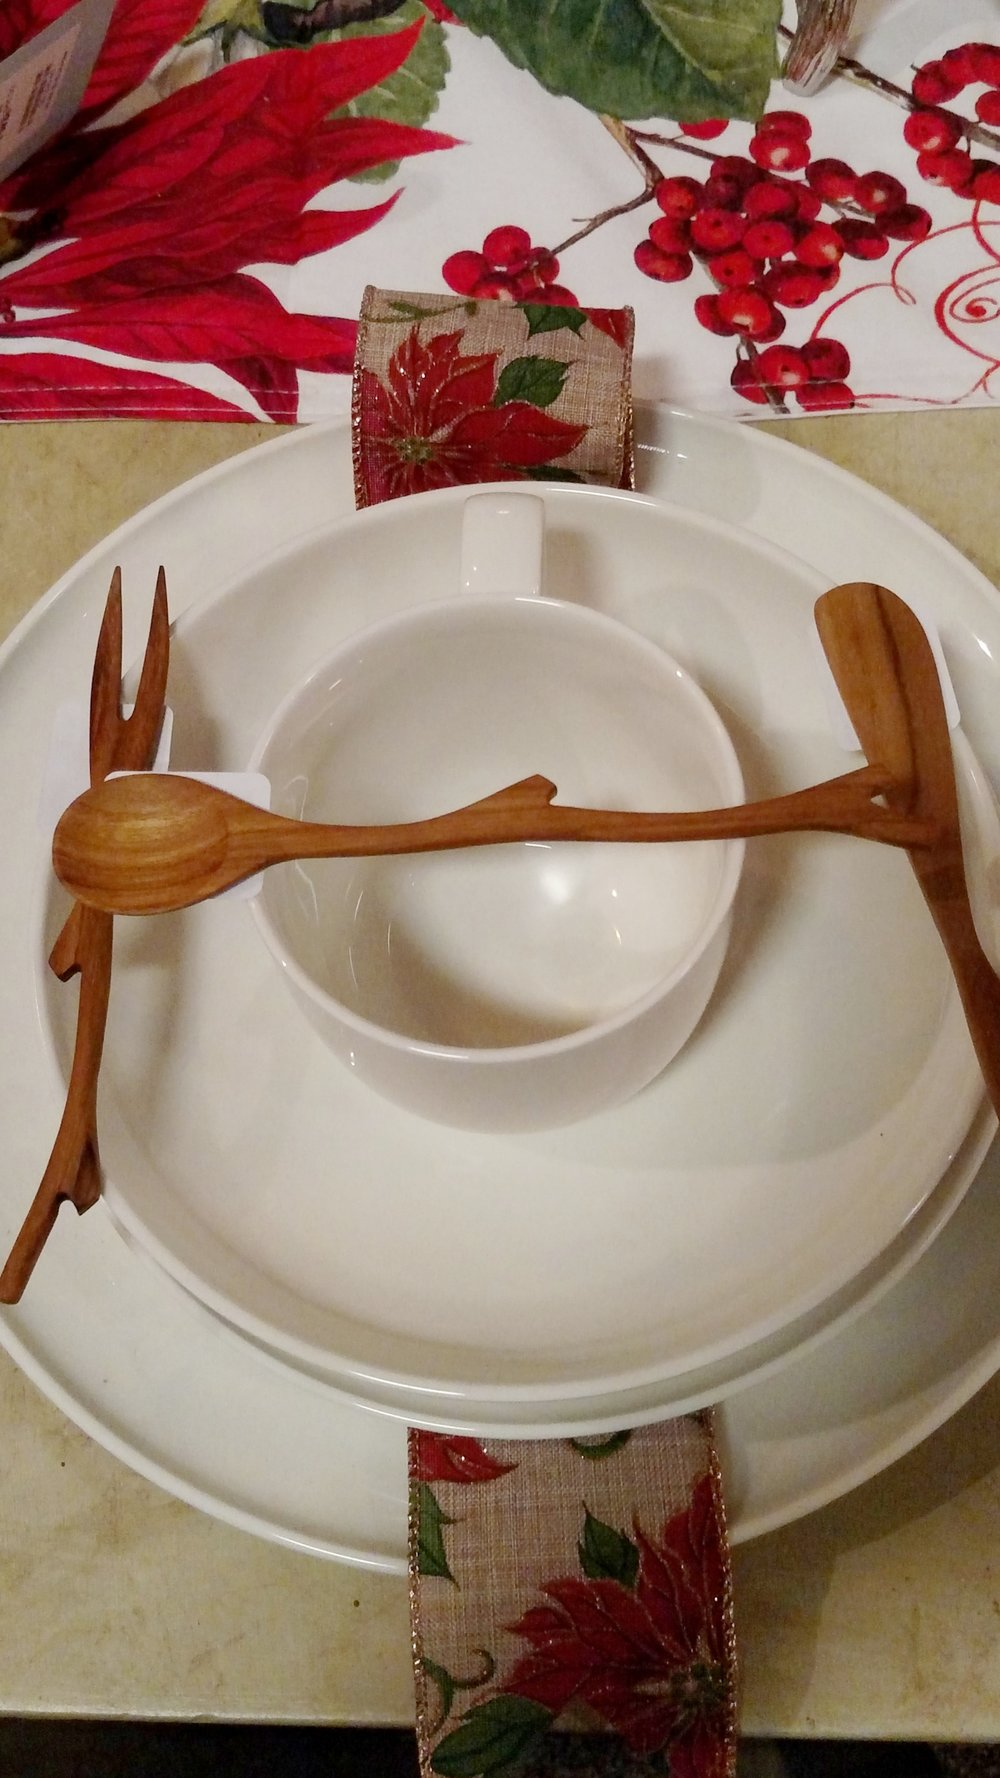 Uniquely beautiful Table Setting with Hand Made Natural Wood Utensils